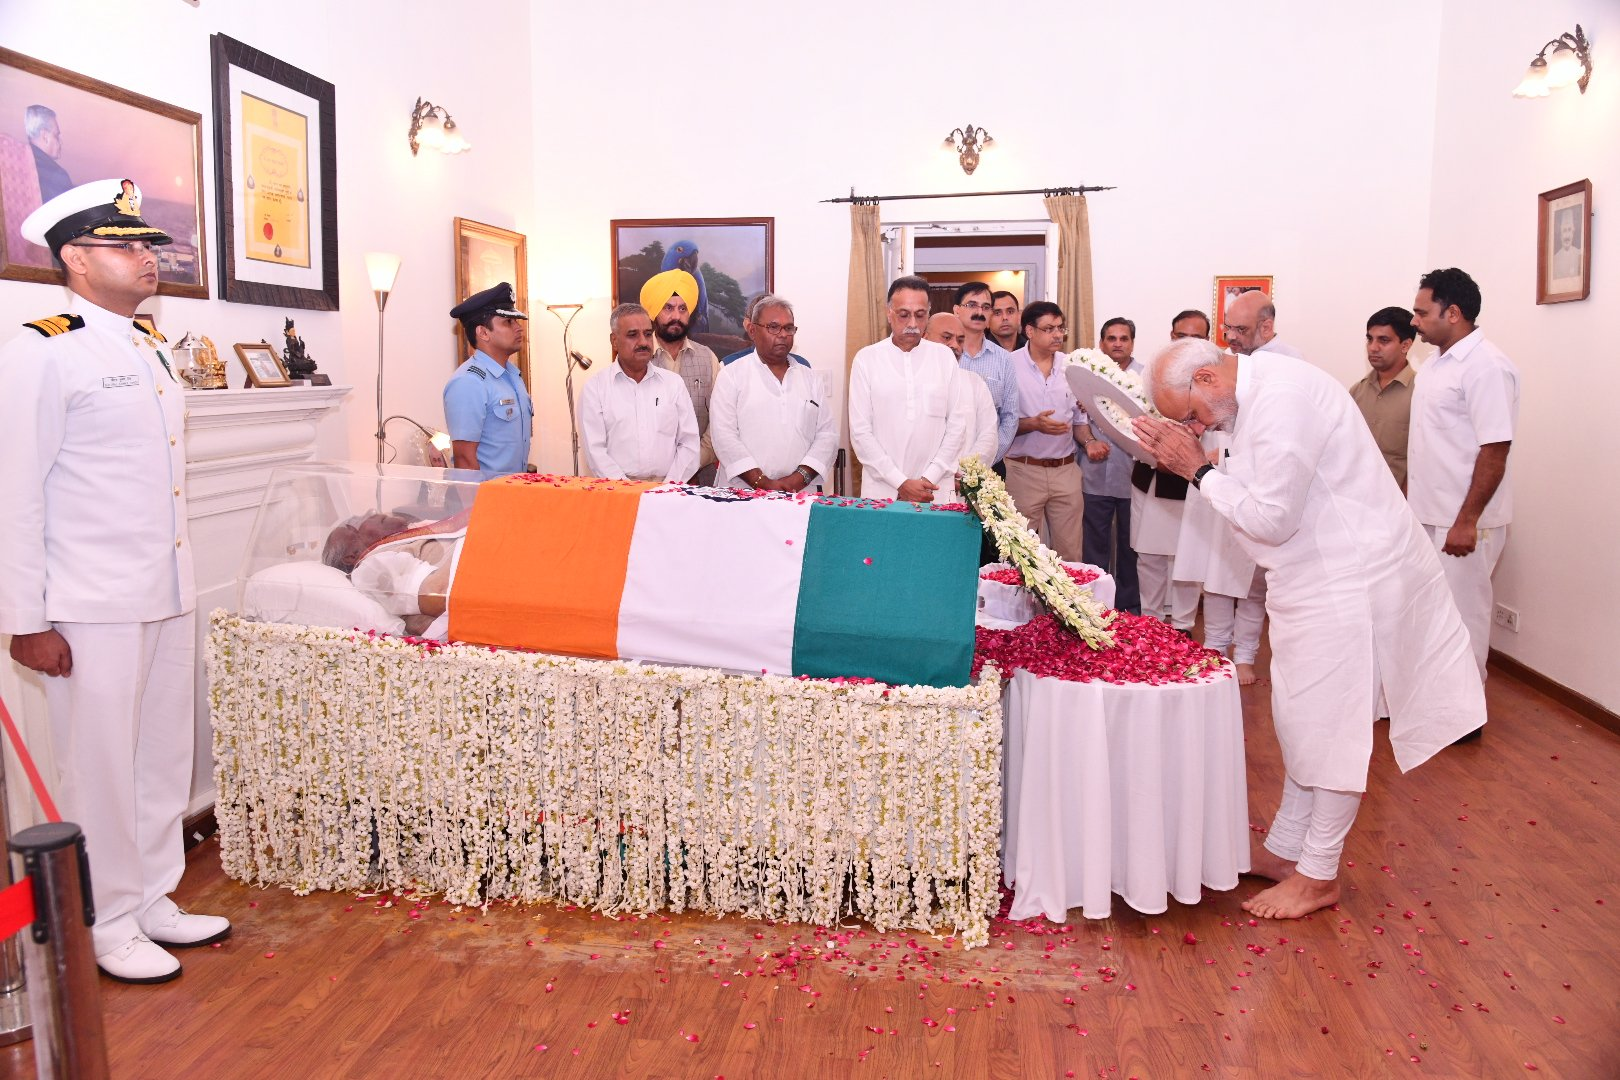 Paid tributes to Atal Ji at his residence. https://t.co/Gd8neyxC6H